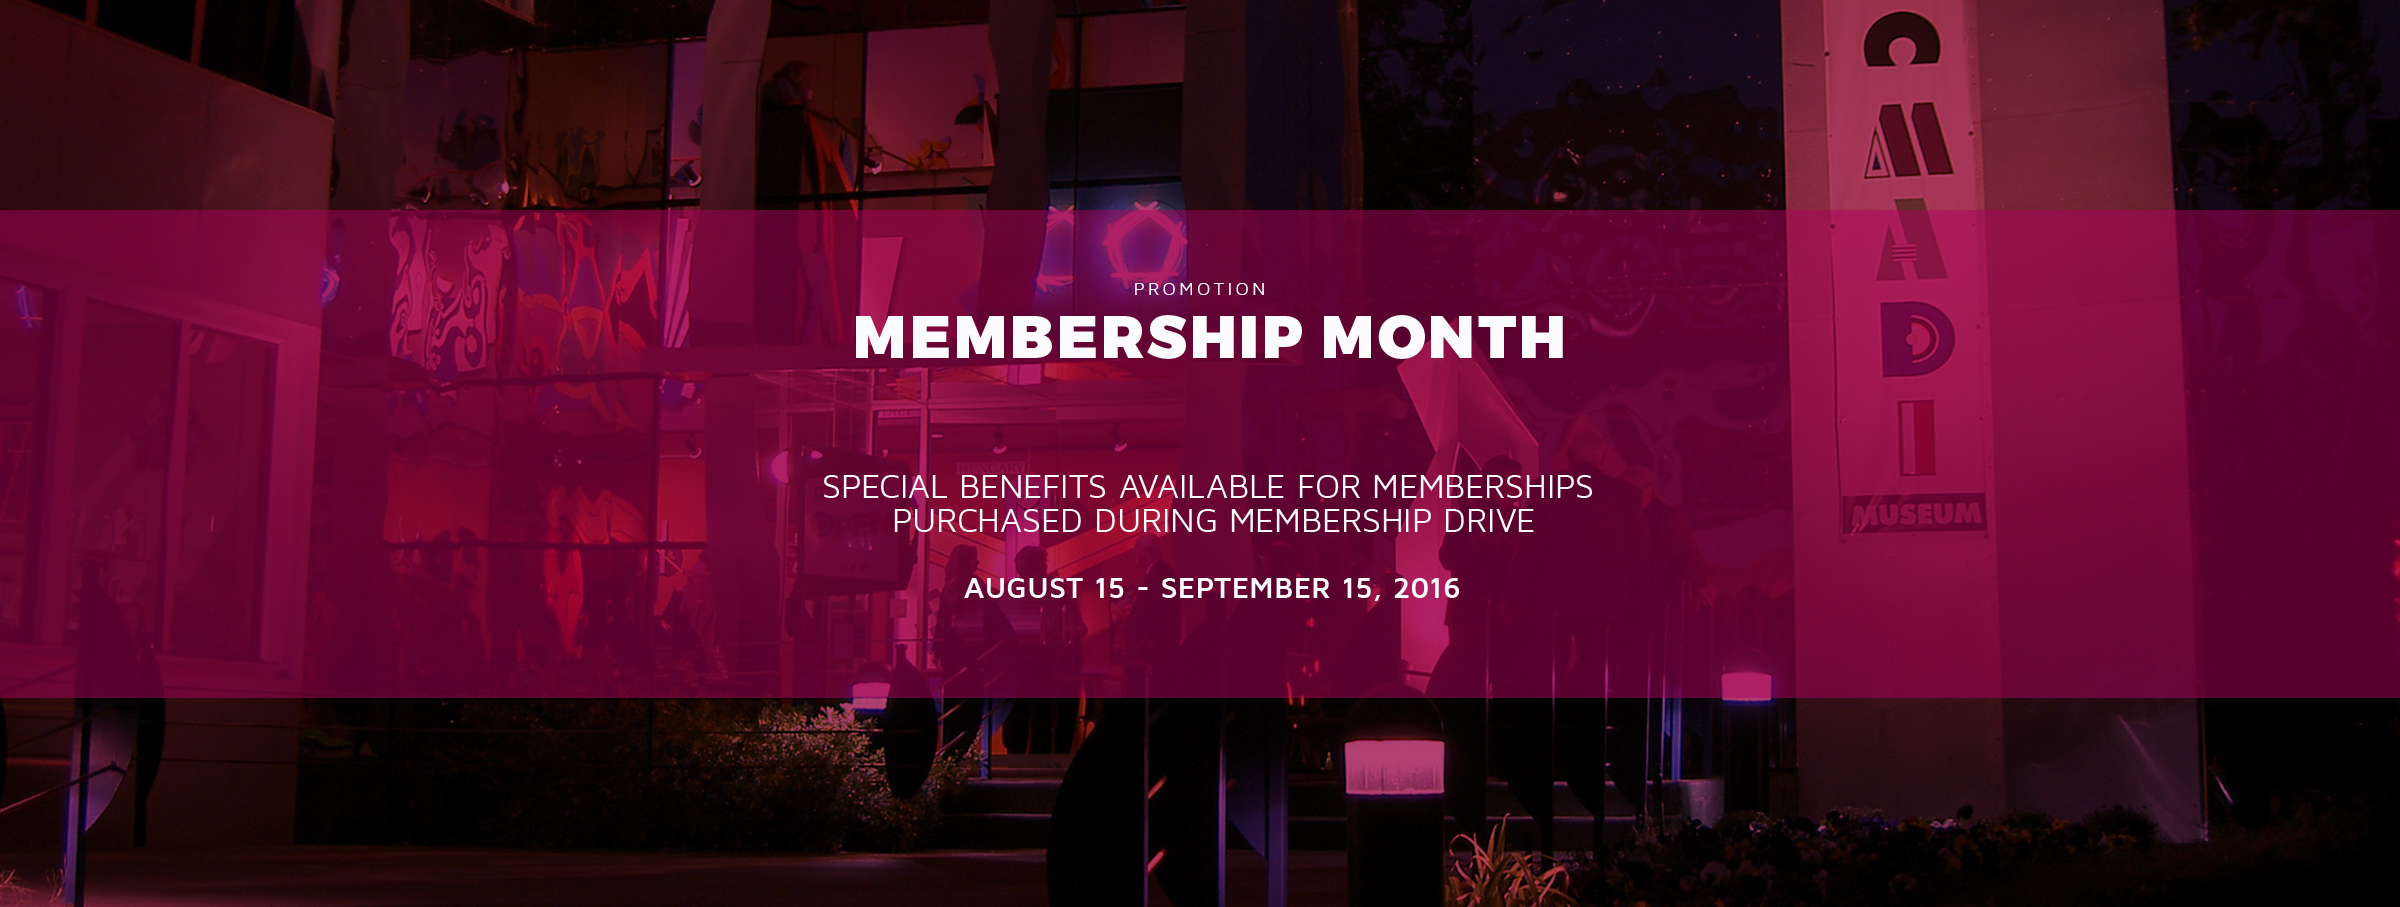 Membership Month at the Museum of Geometric and MADI Art